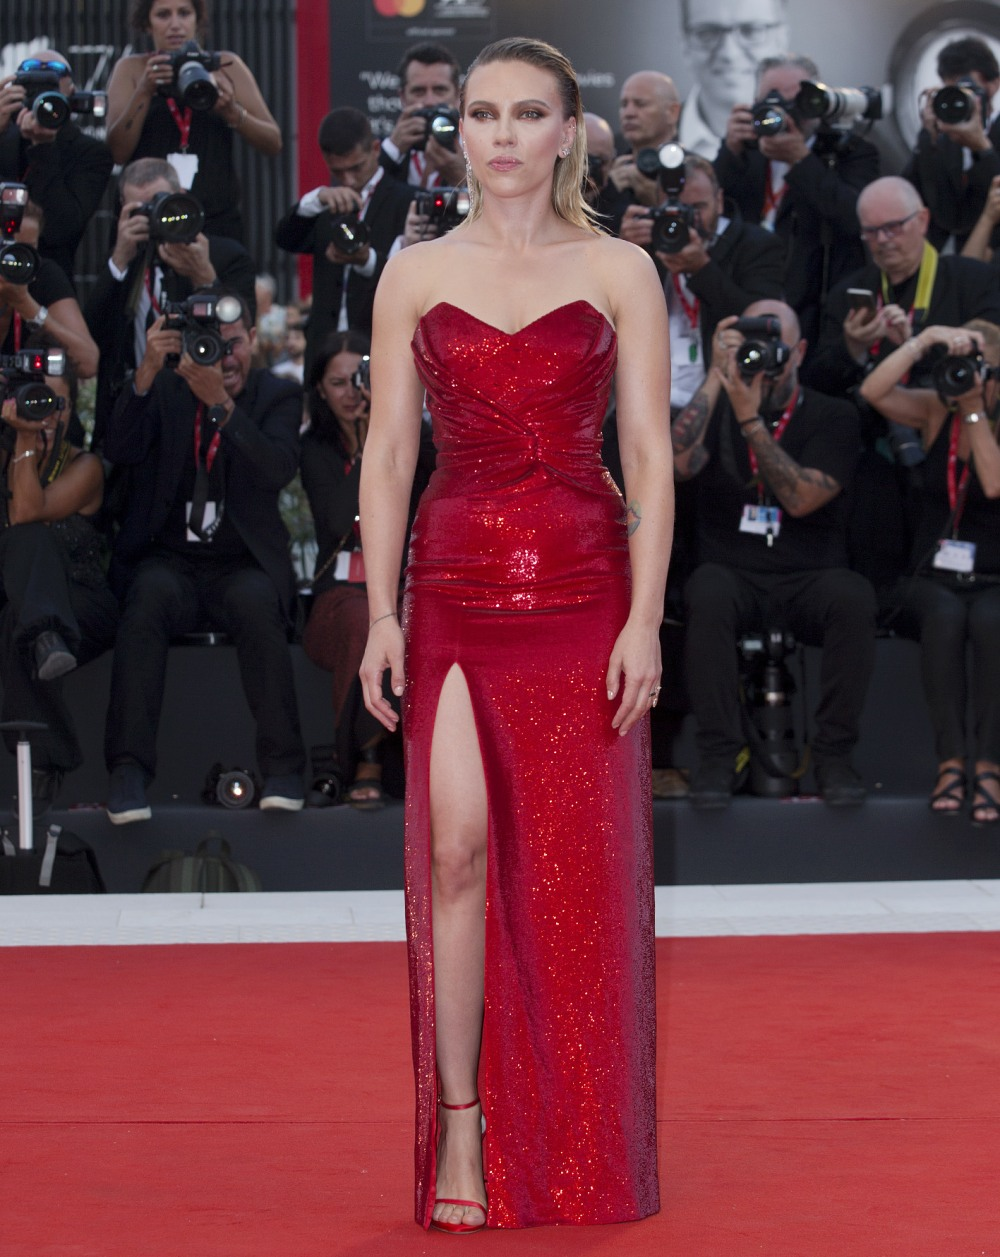 76th Venice Film Festival, Italy - 'Marriage Story' Premiere - Red Carpet